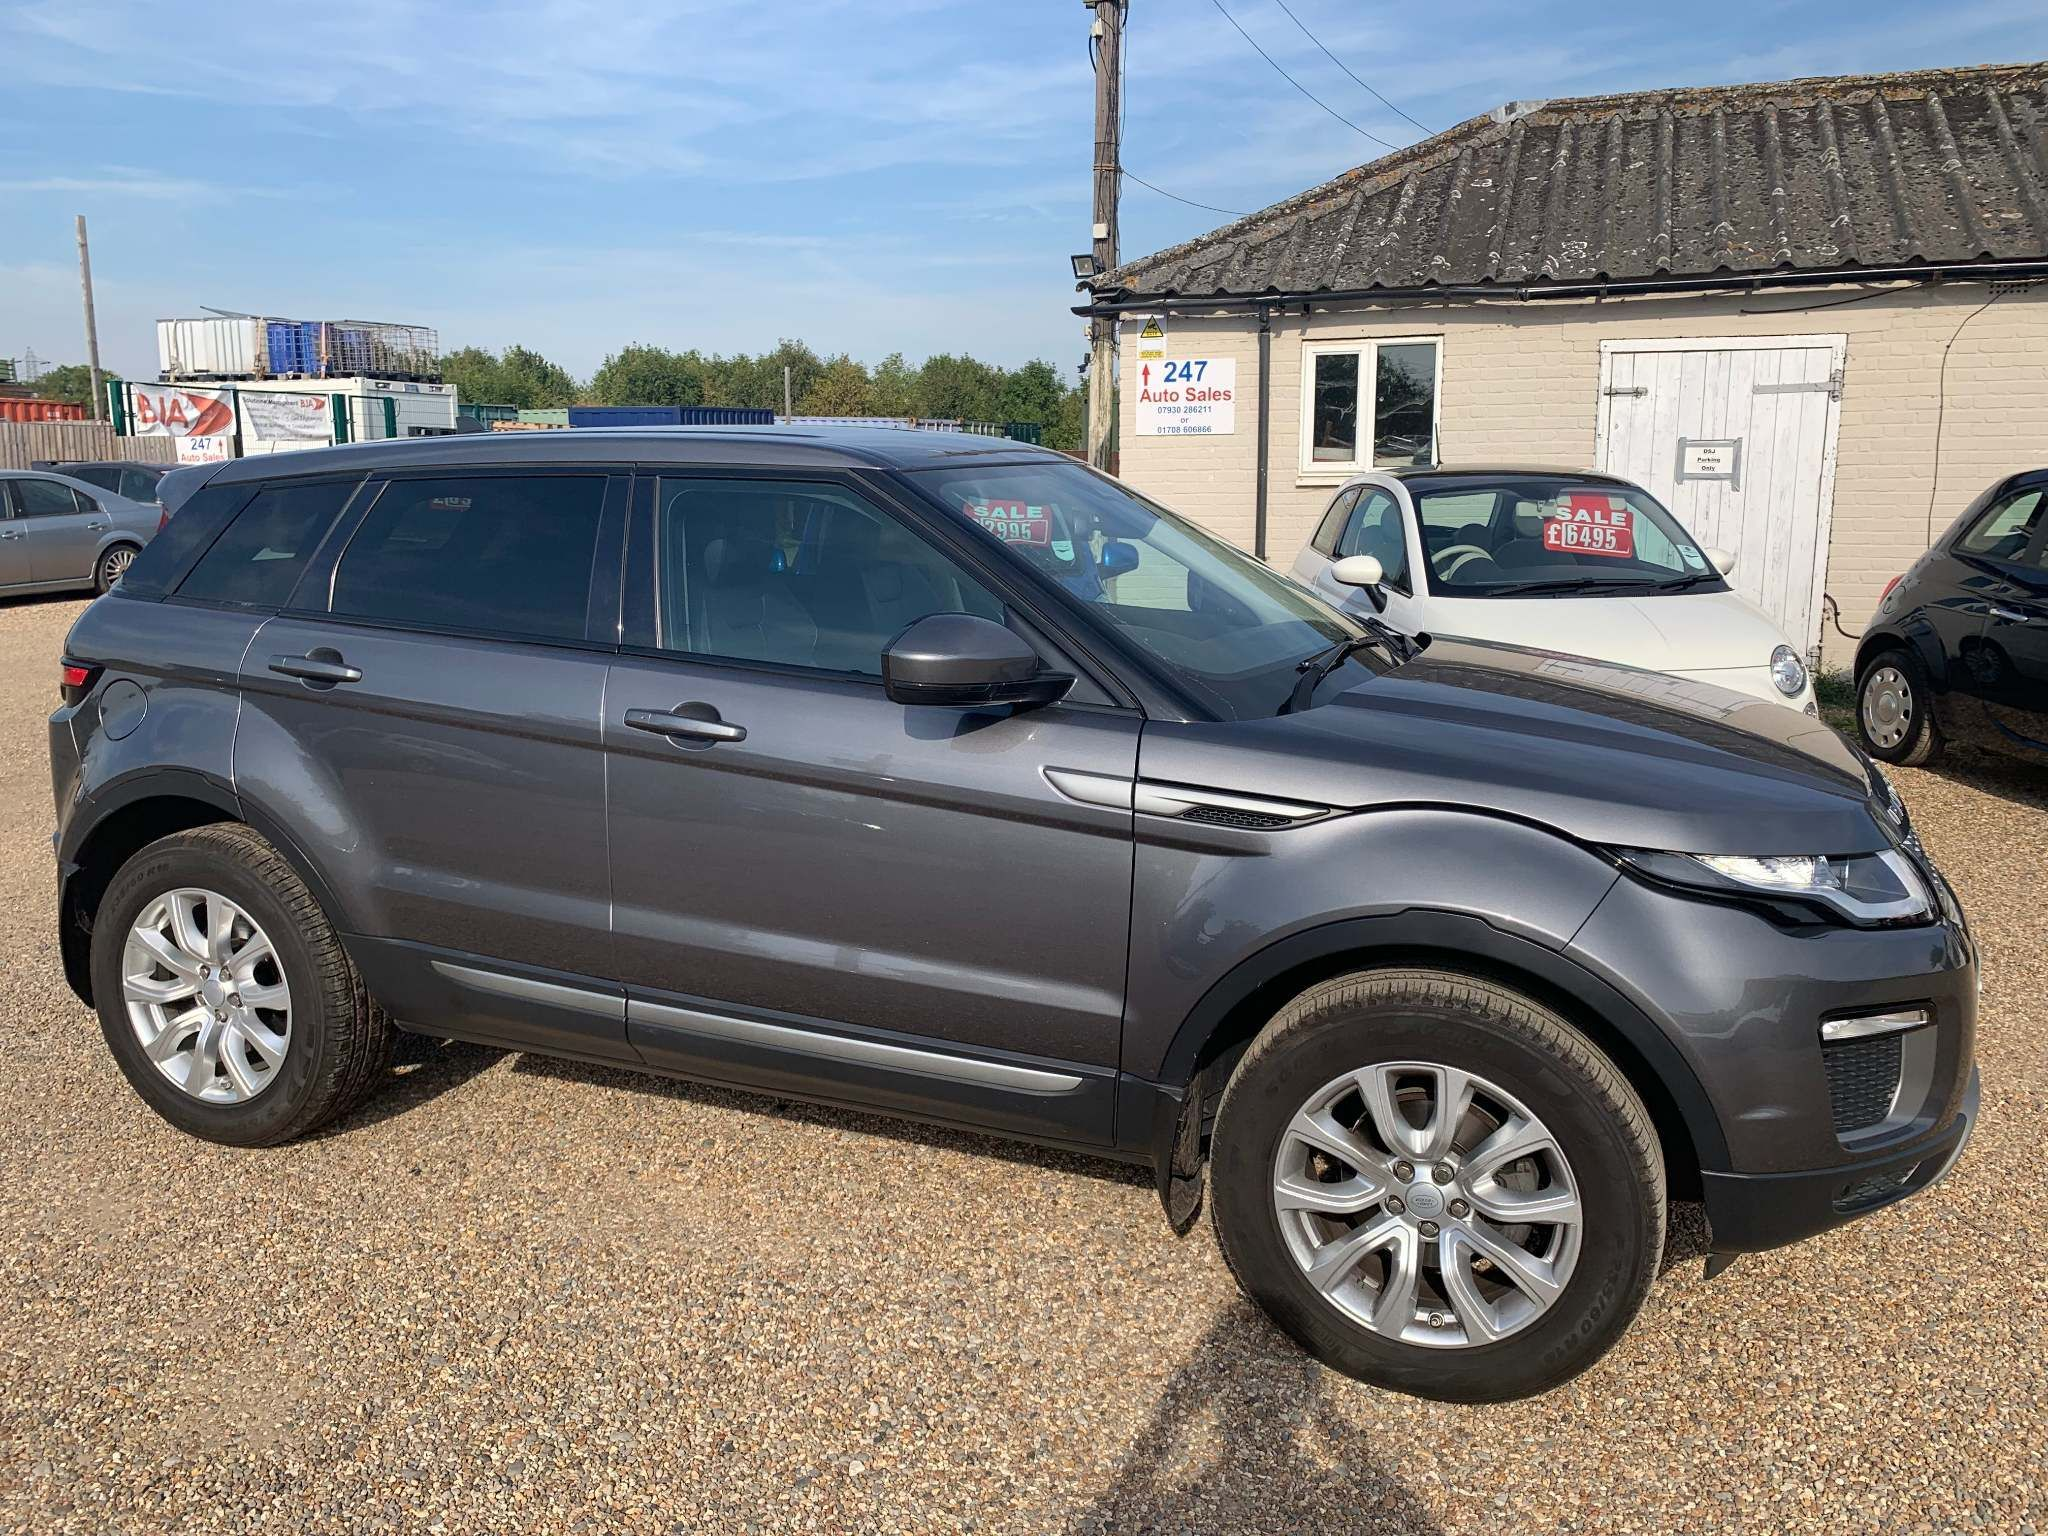 247 Auto Sales >> 247 Auto Sales Used Car Dealership In Upminster